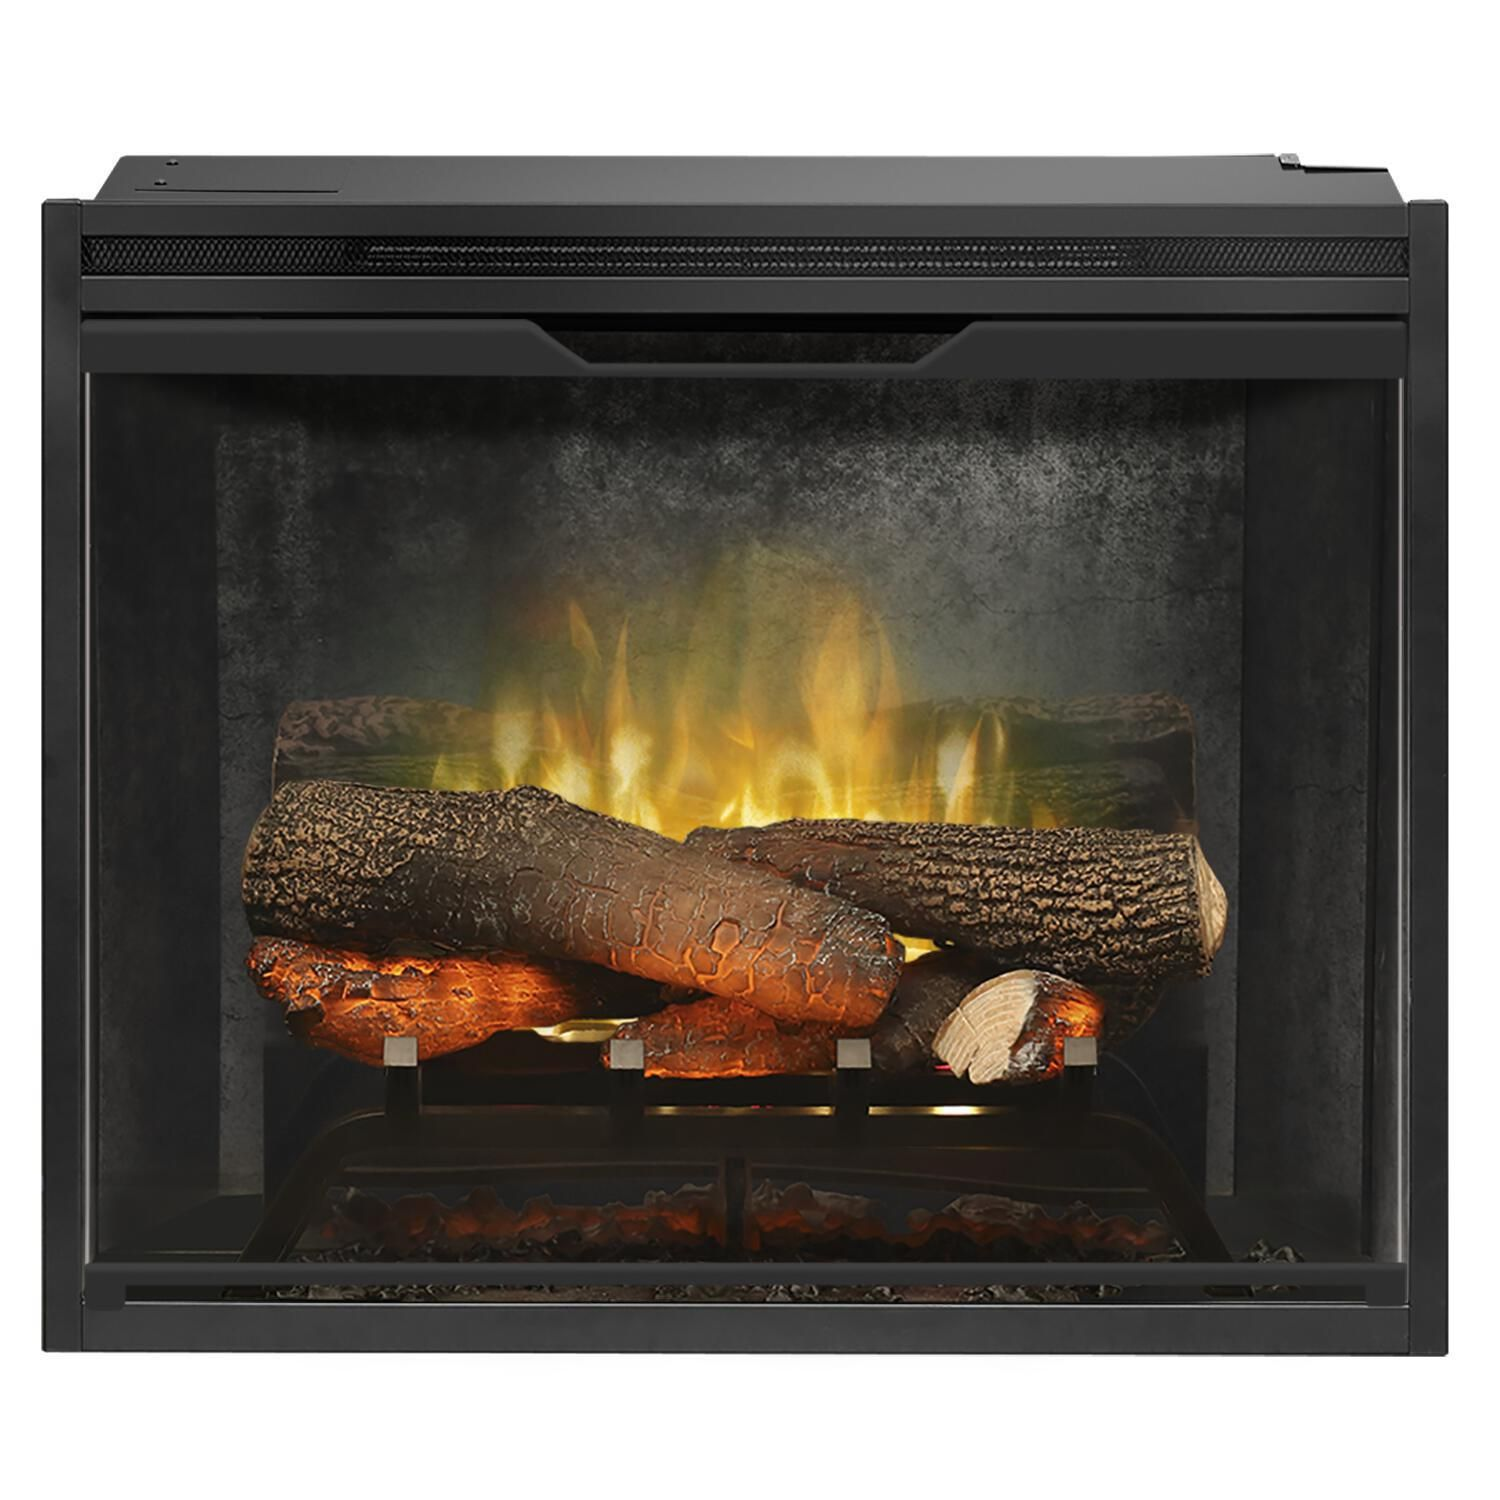 Dimplex Revillusion 24 Built In Electric Fireplace Weathered